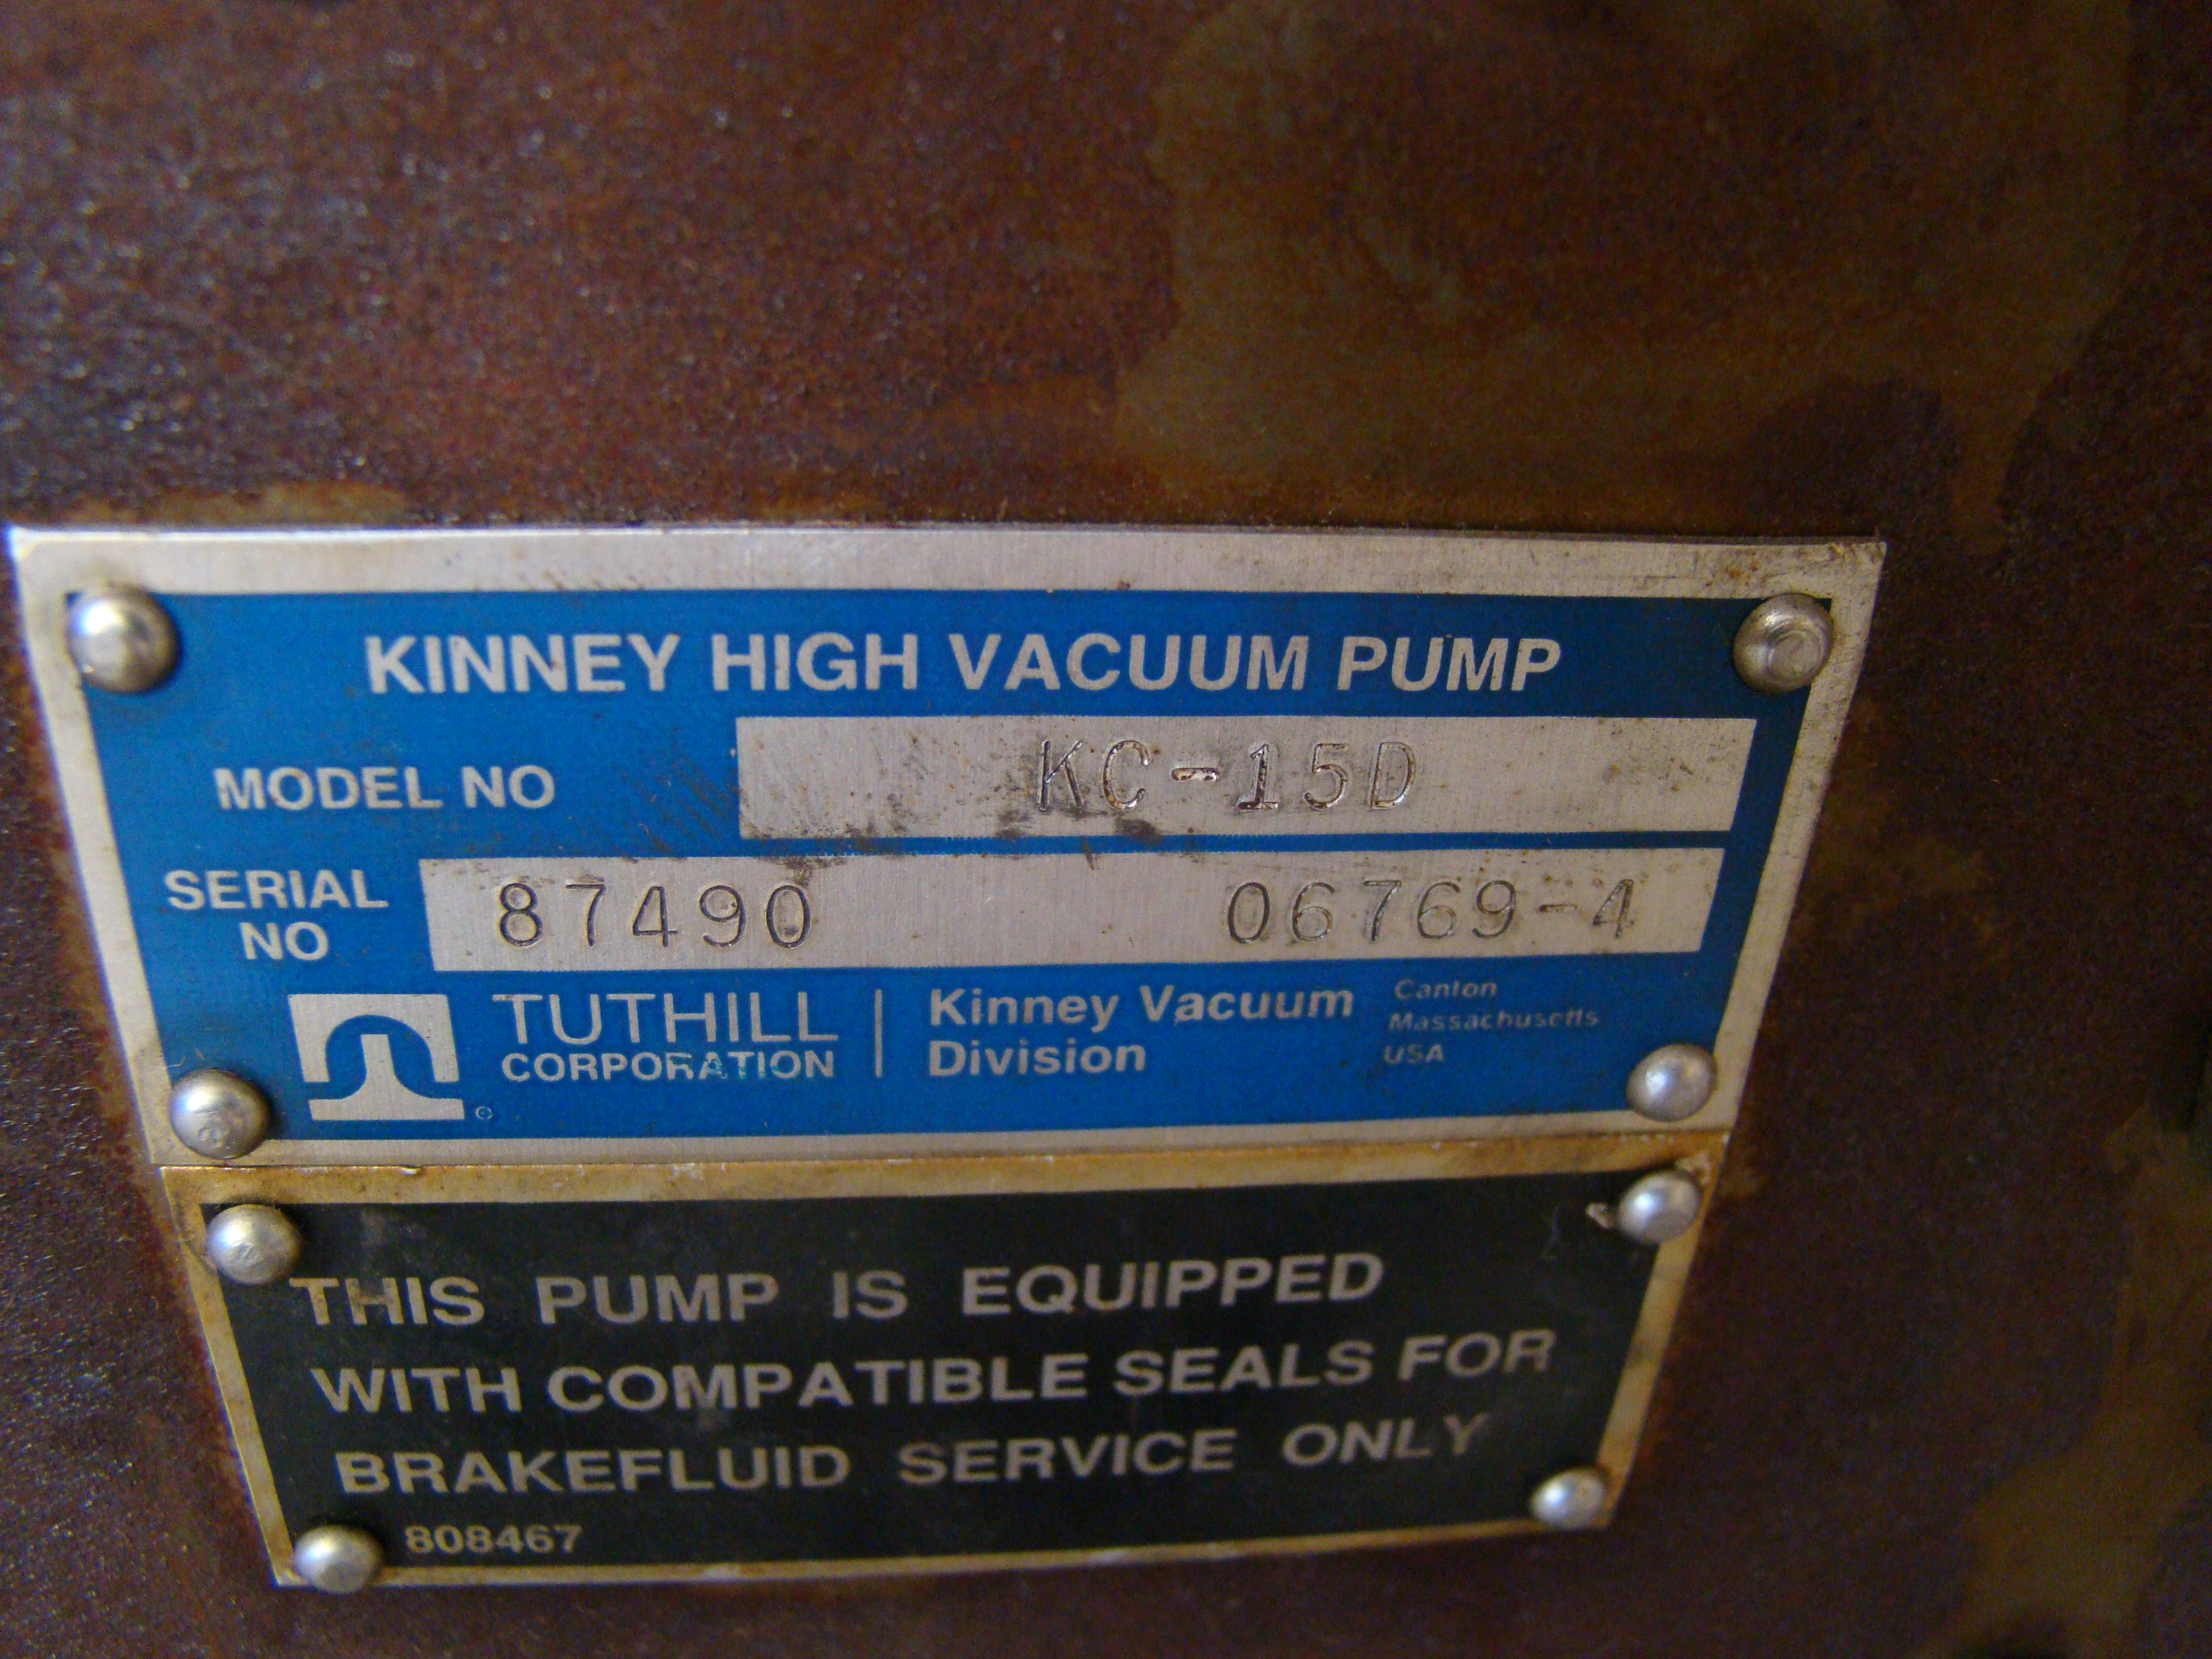 Kinney High Vacuum Hydraulic Pump 1HP 230/460 Volt 3PH - Image 4 of 4